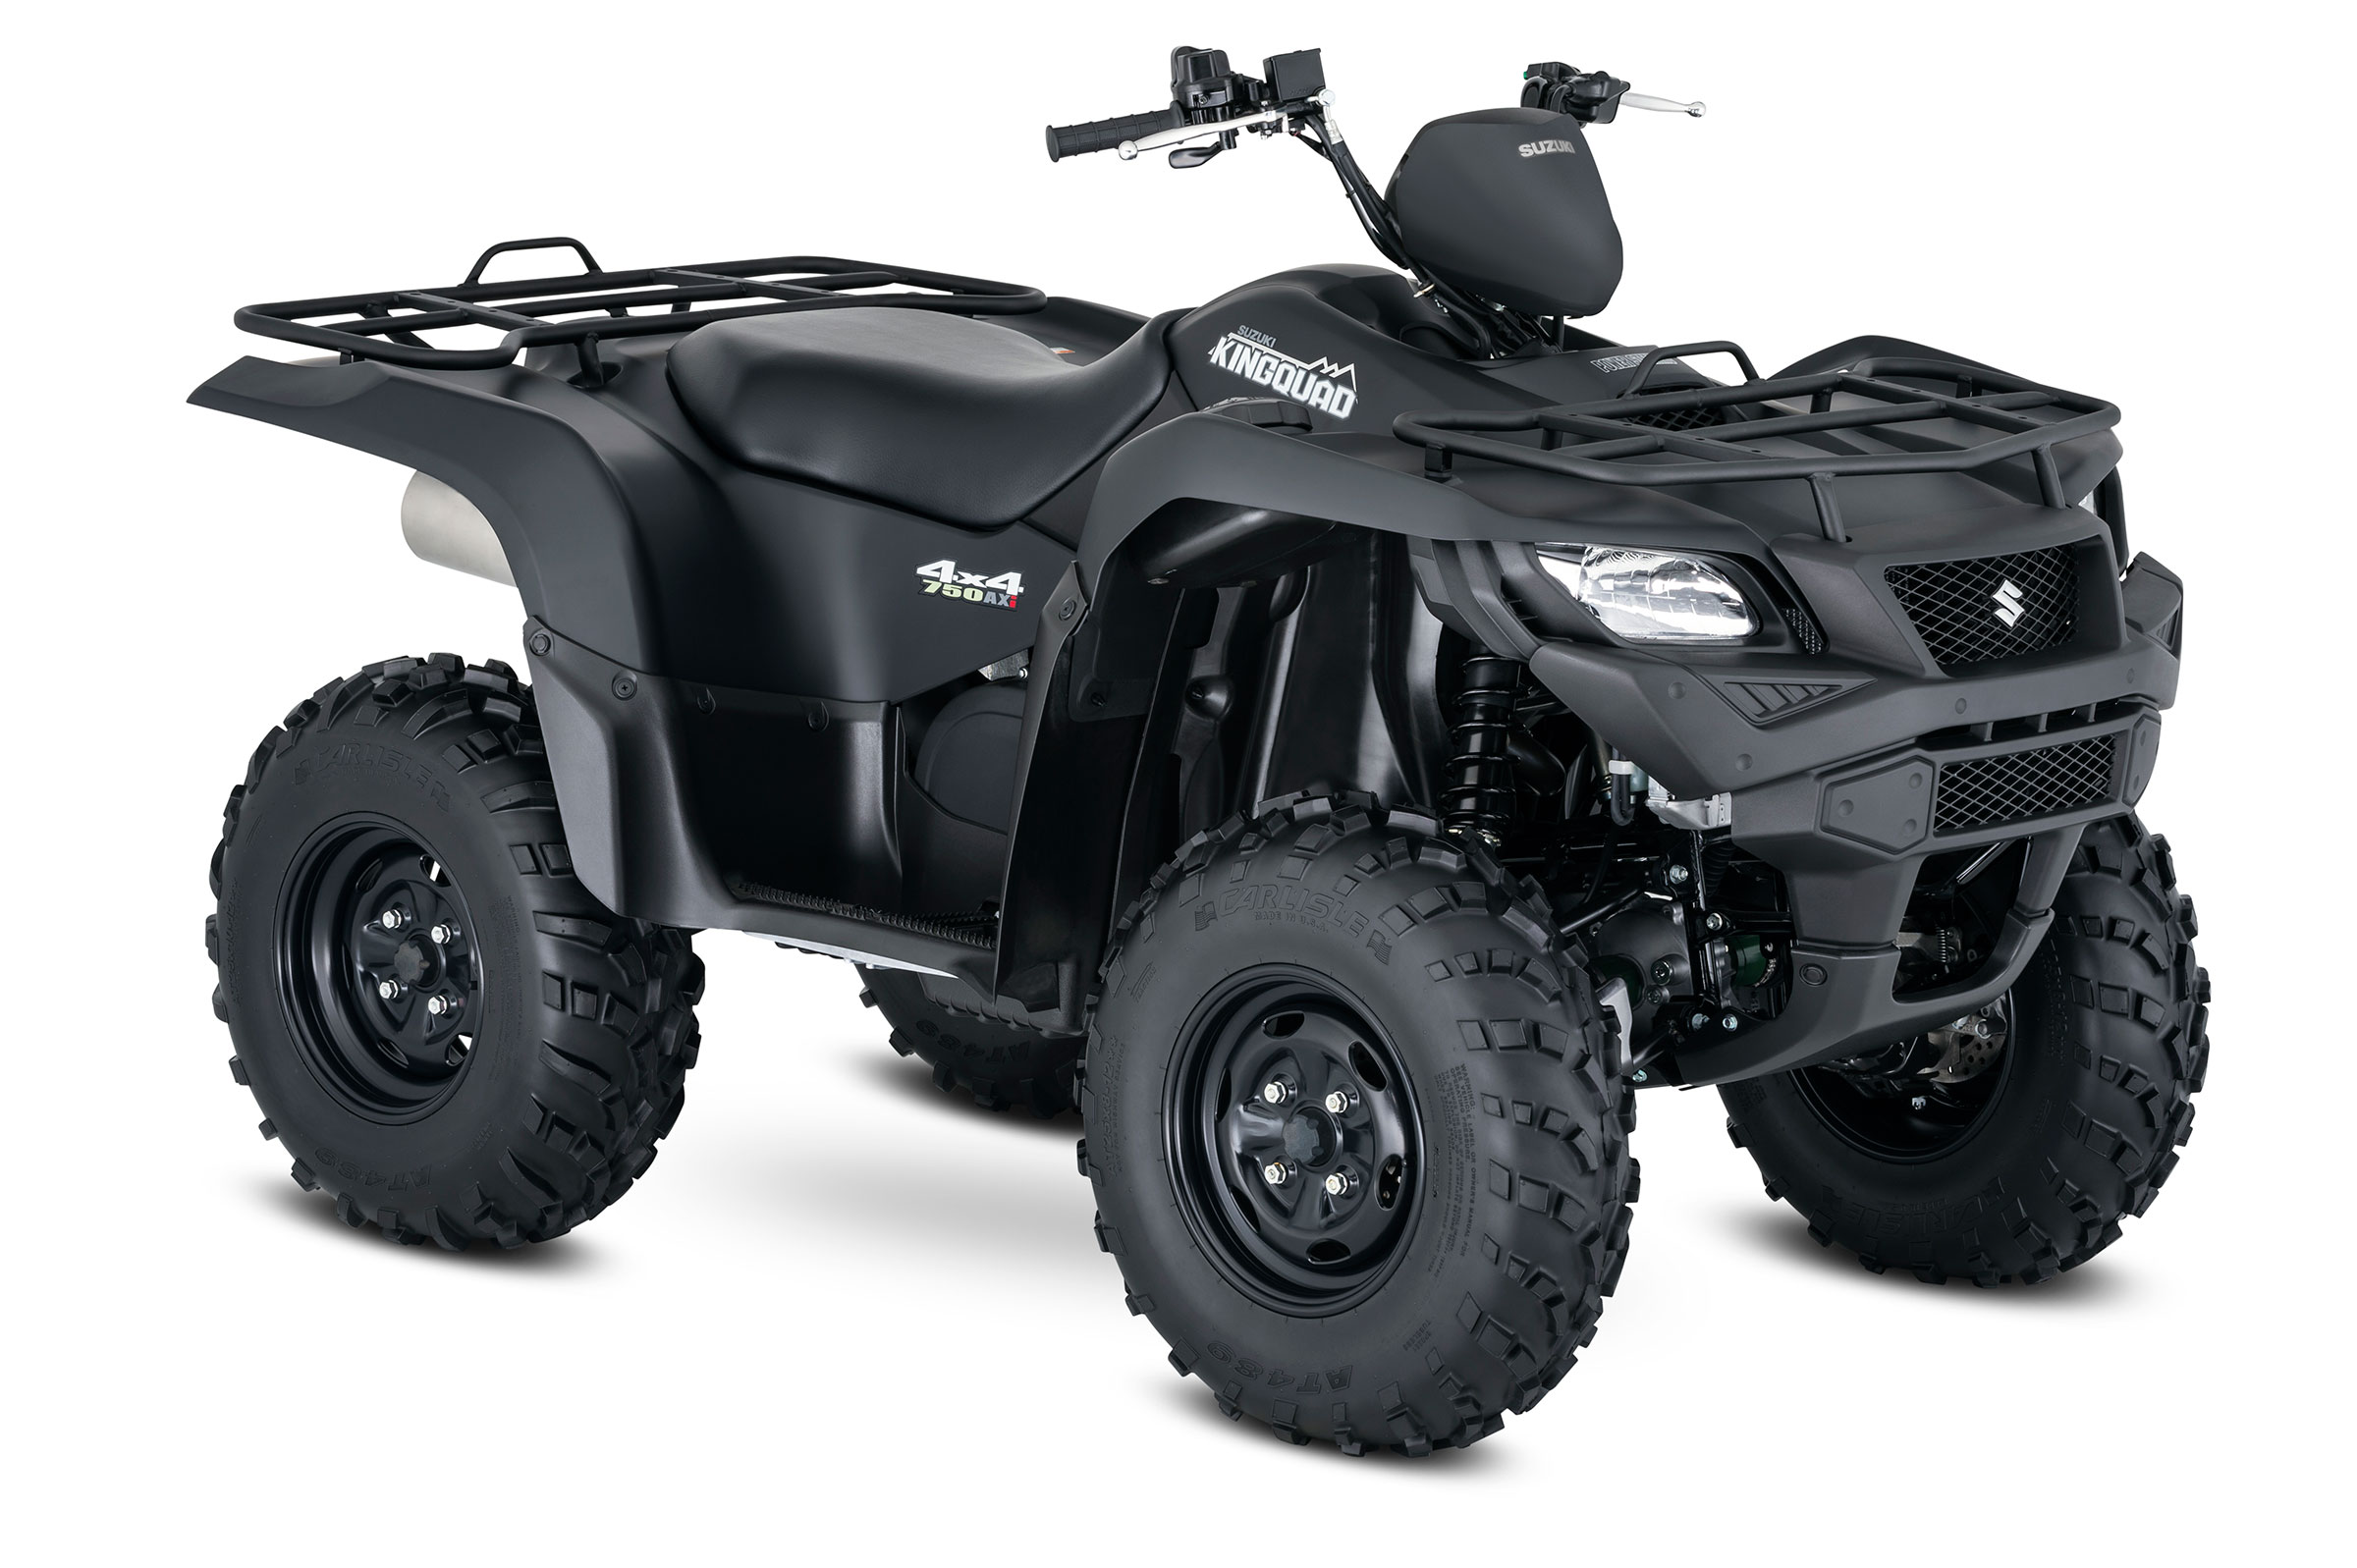 2018 Suzuki KingQuad 750AXi Power Steering Special Edition in Fayetteville, Georgia - Photo 3